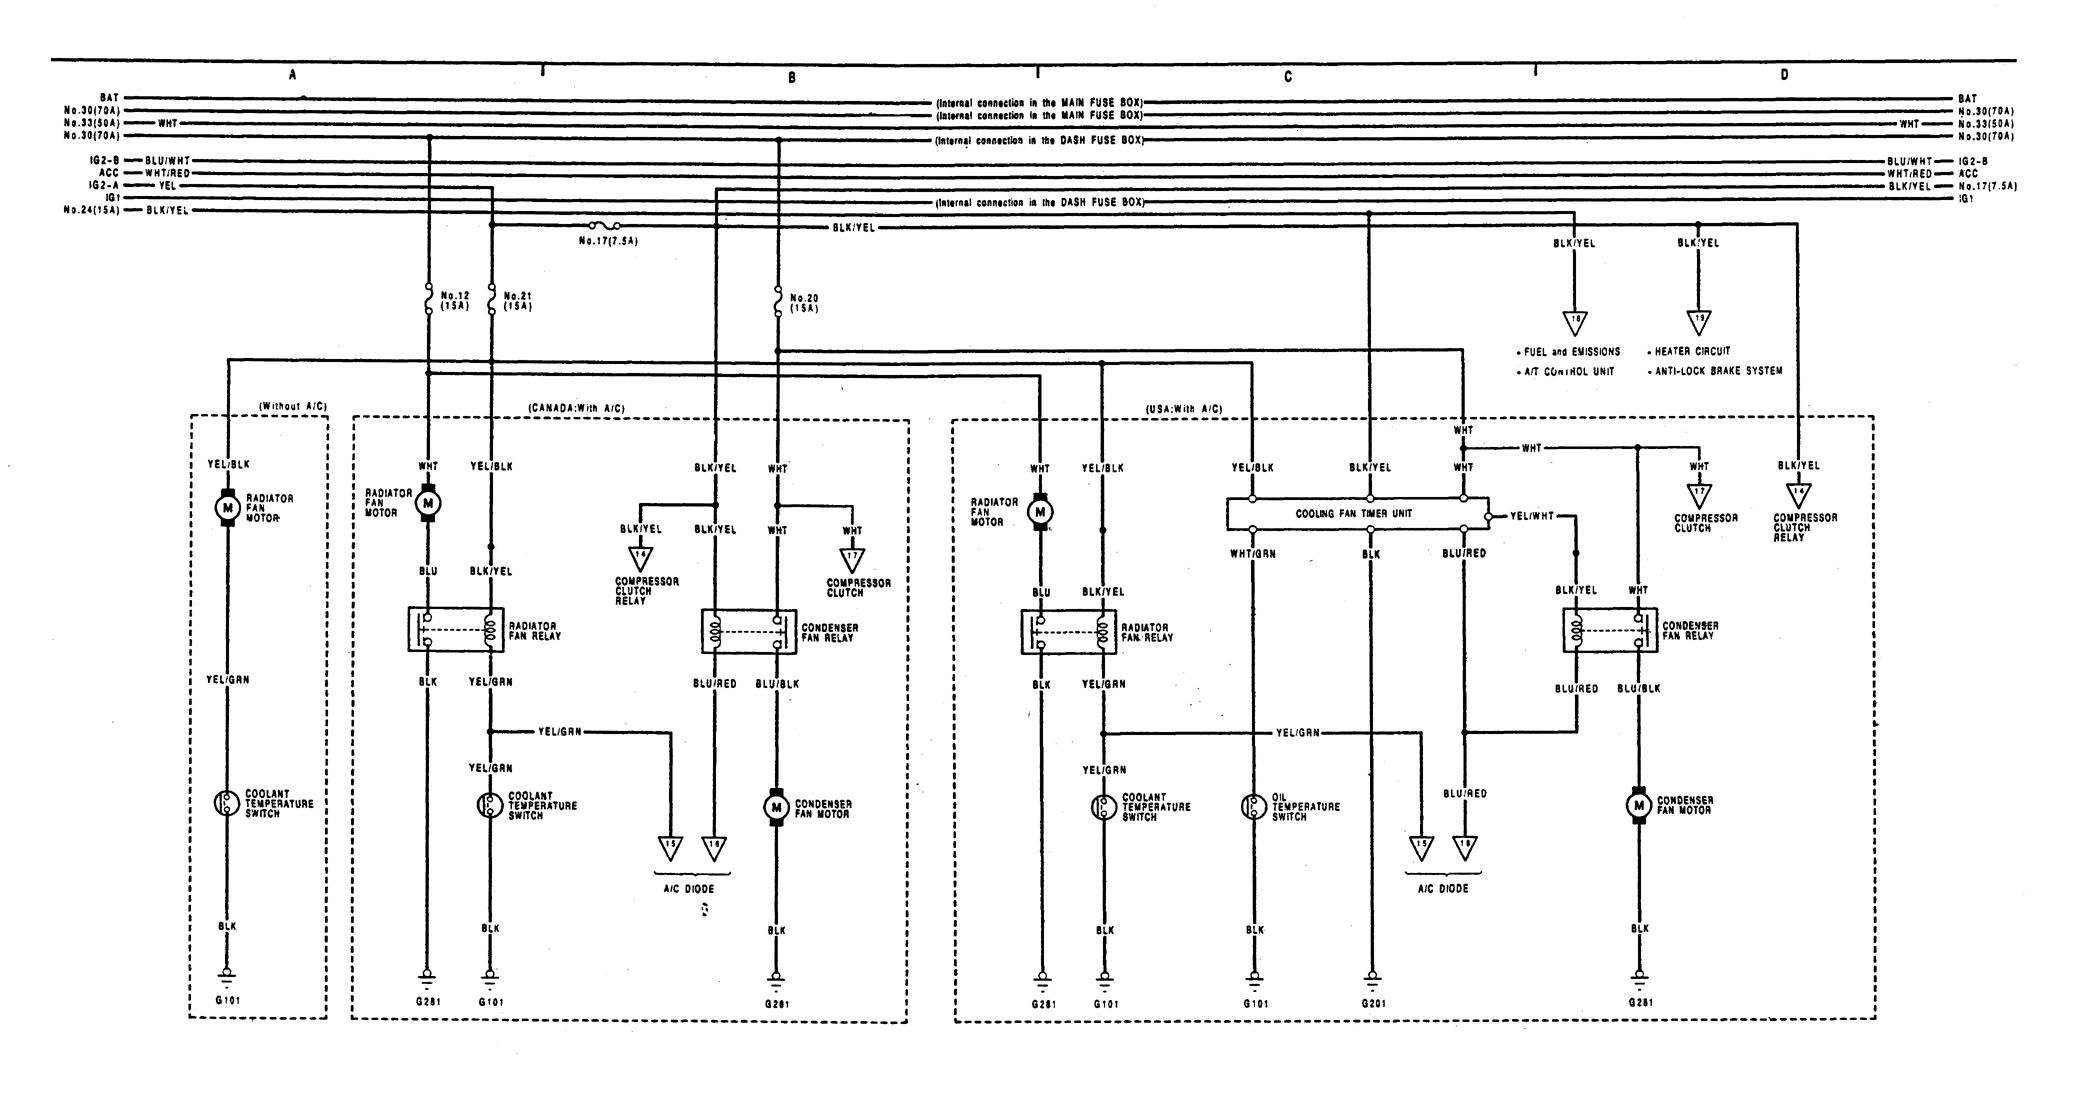 Wiring Diagram For 1991 Acura Integra Diagrams Fuse Box Layout 1992 Cooling 1990 Electrical System Color Codes